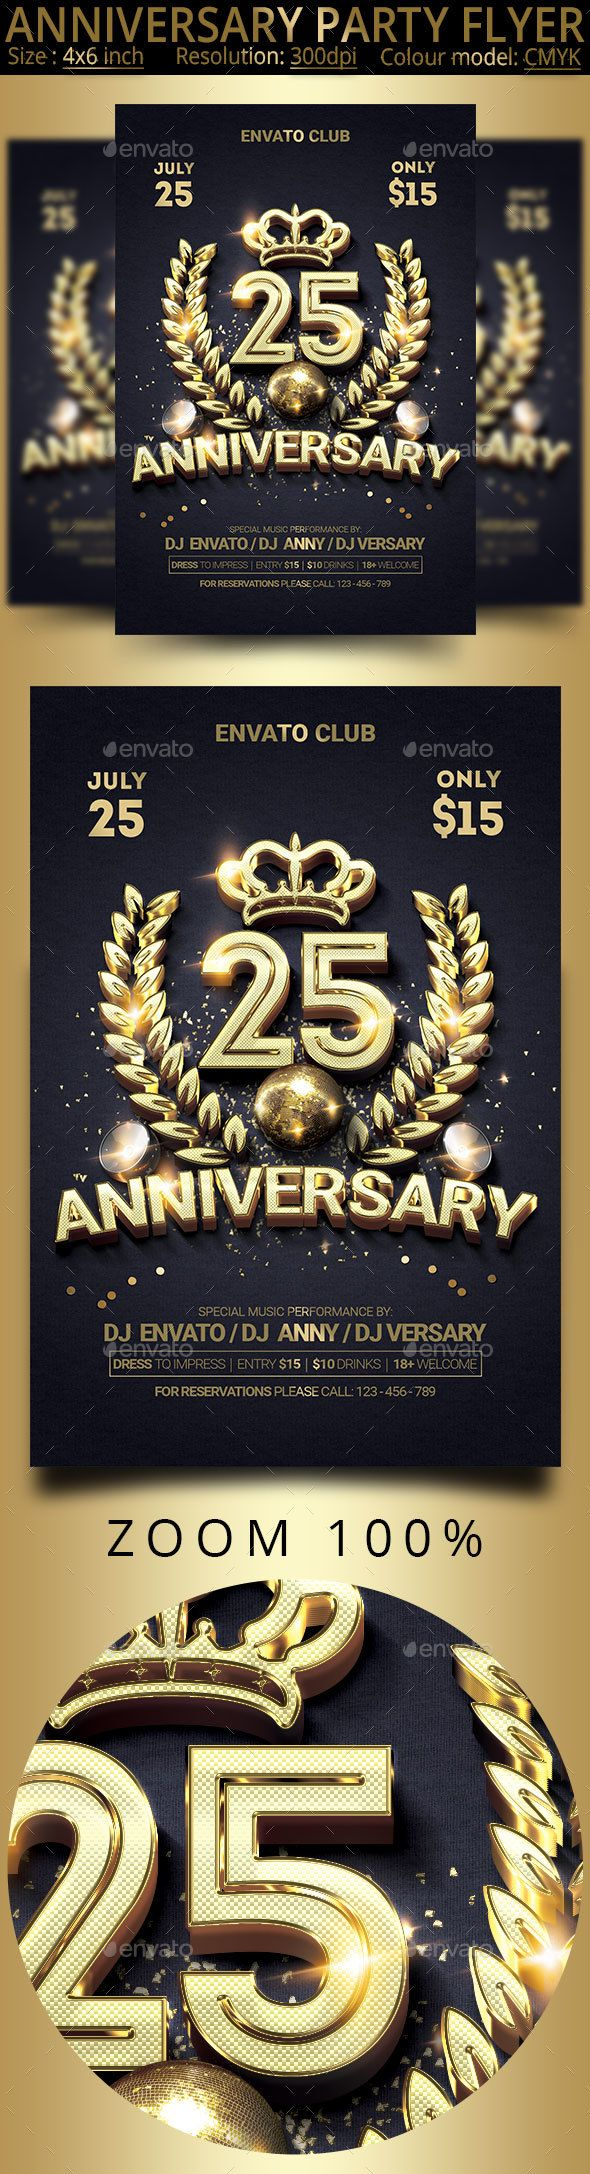 Anniversary Party Flyer - Events Flyers -  anniversary, b-day, bash, birthday, birthday flyer, black, bottle, celebration, champagne, colorful, elegant, event, flyer, flyer design, flyer template, gold, golden, invitation, light, luxe, luxury event, night club, party, party flyer, poster, private, spark, special, vip